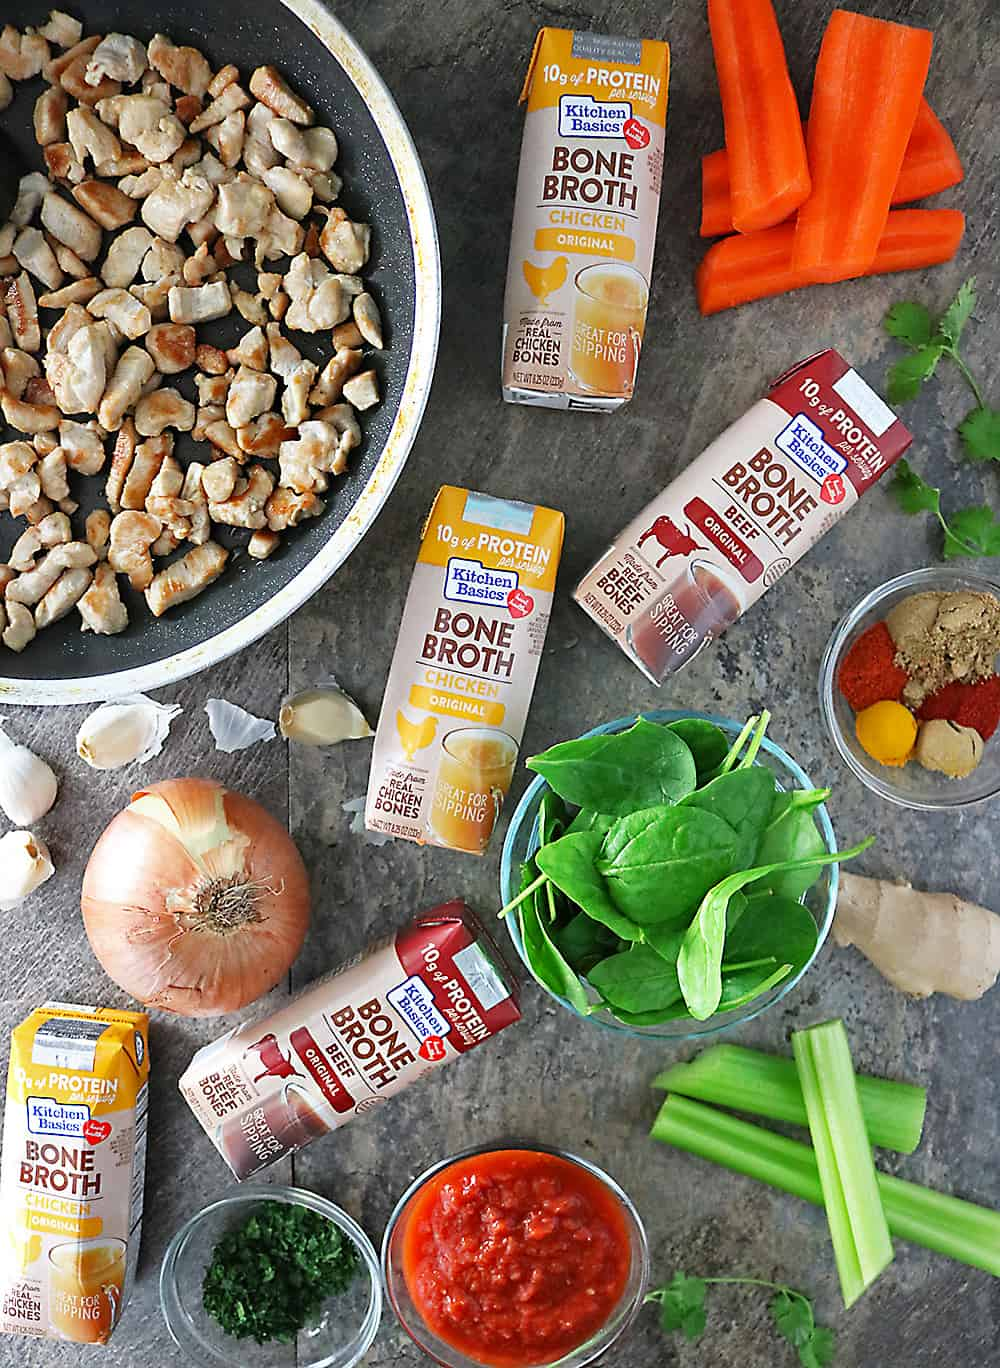 Kitchen Basics Bone Broth With Other Ingredients For Turkey Soup Photo